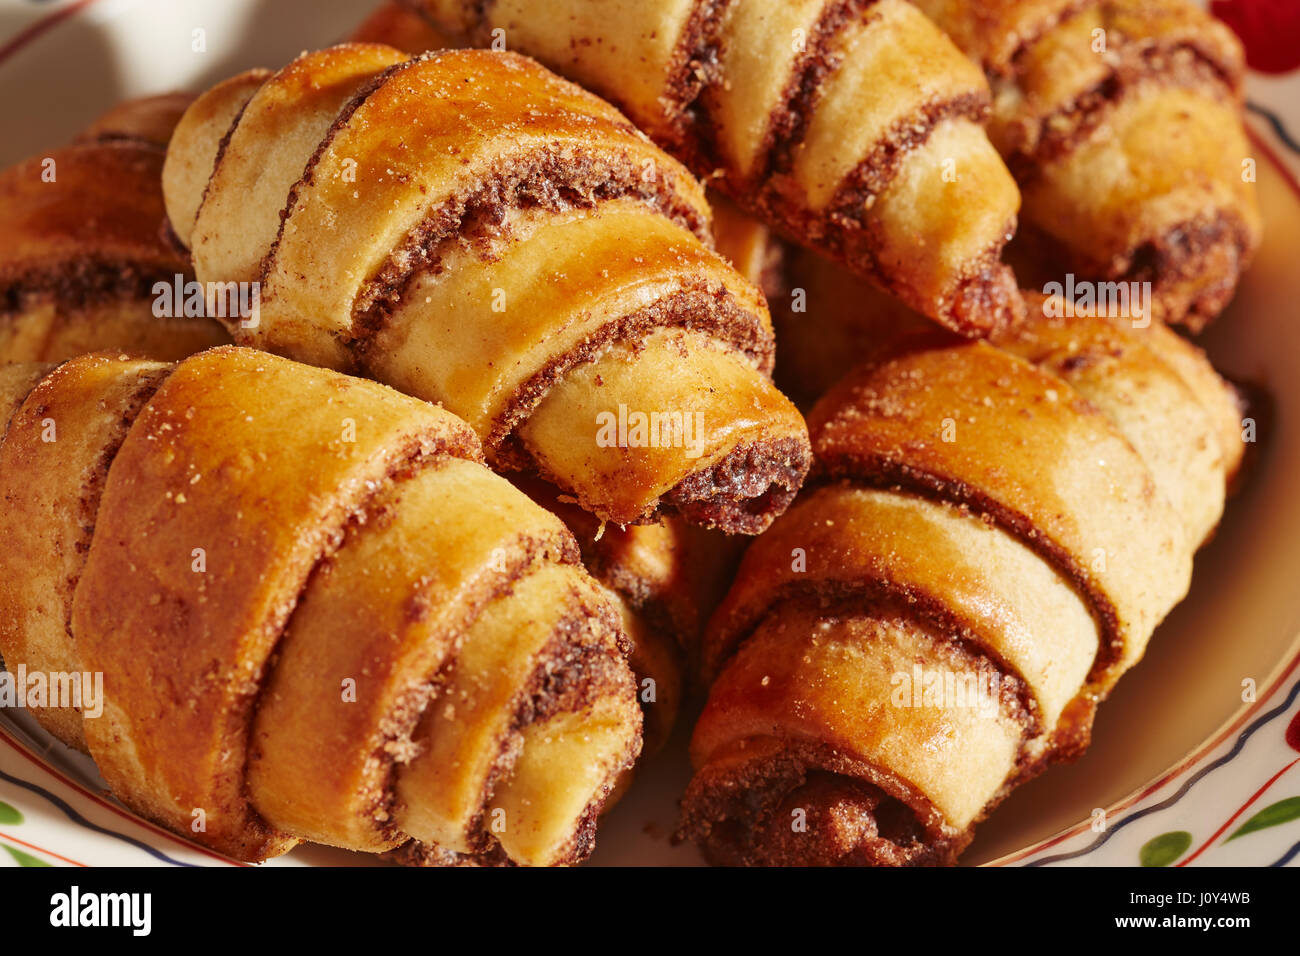 Rugelach, a traditional European pastry popular on Jewish holidays. - Stock Image